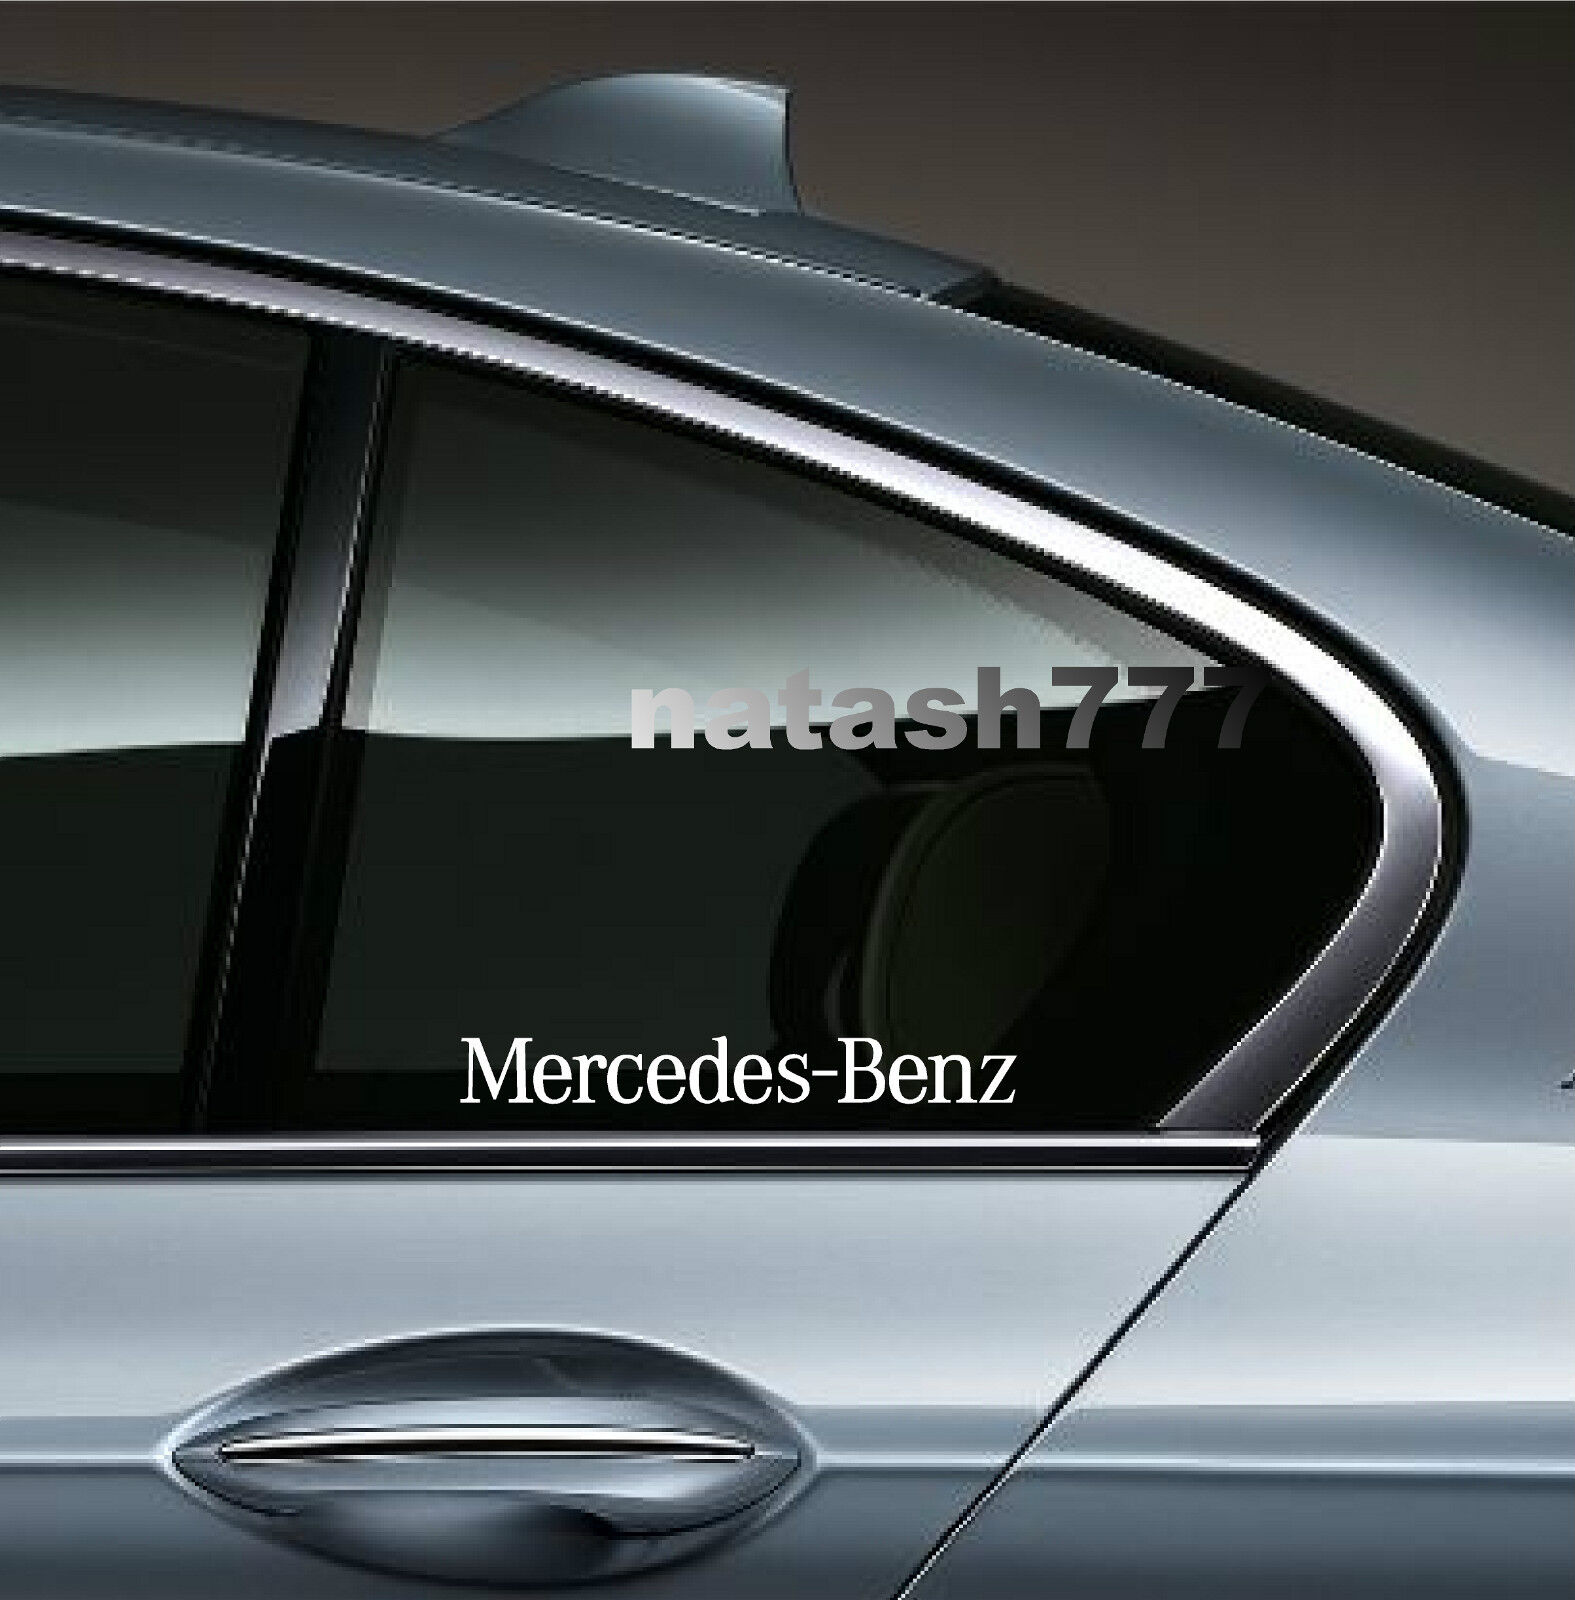 2 mercedes benz sport racing decal sticker emblem logo